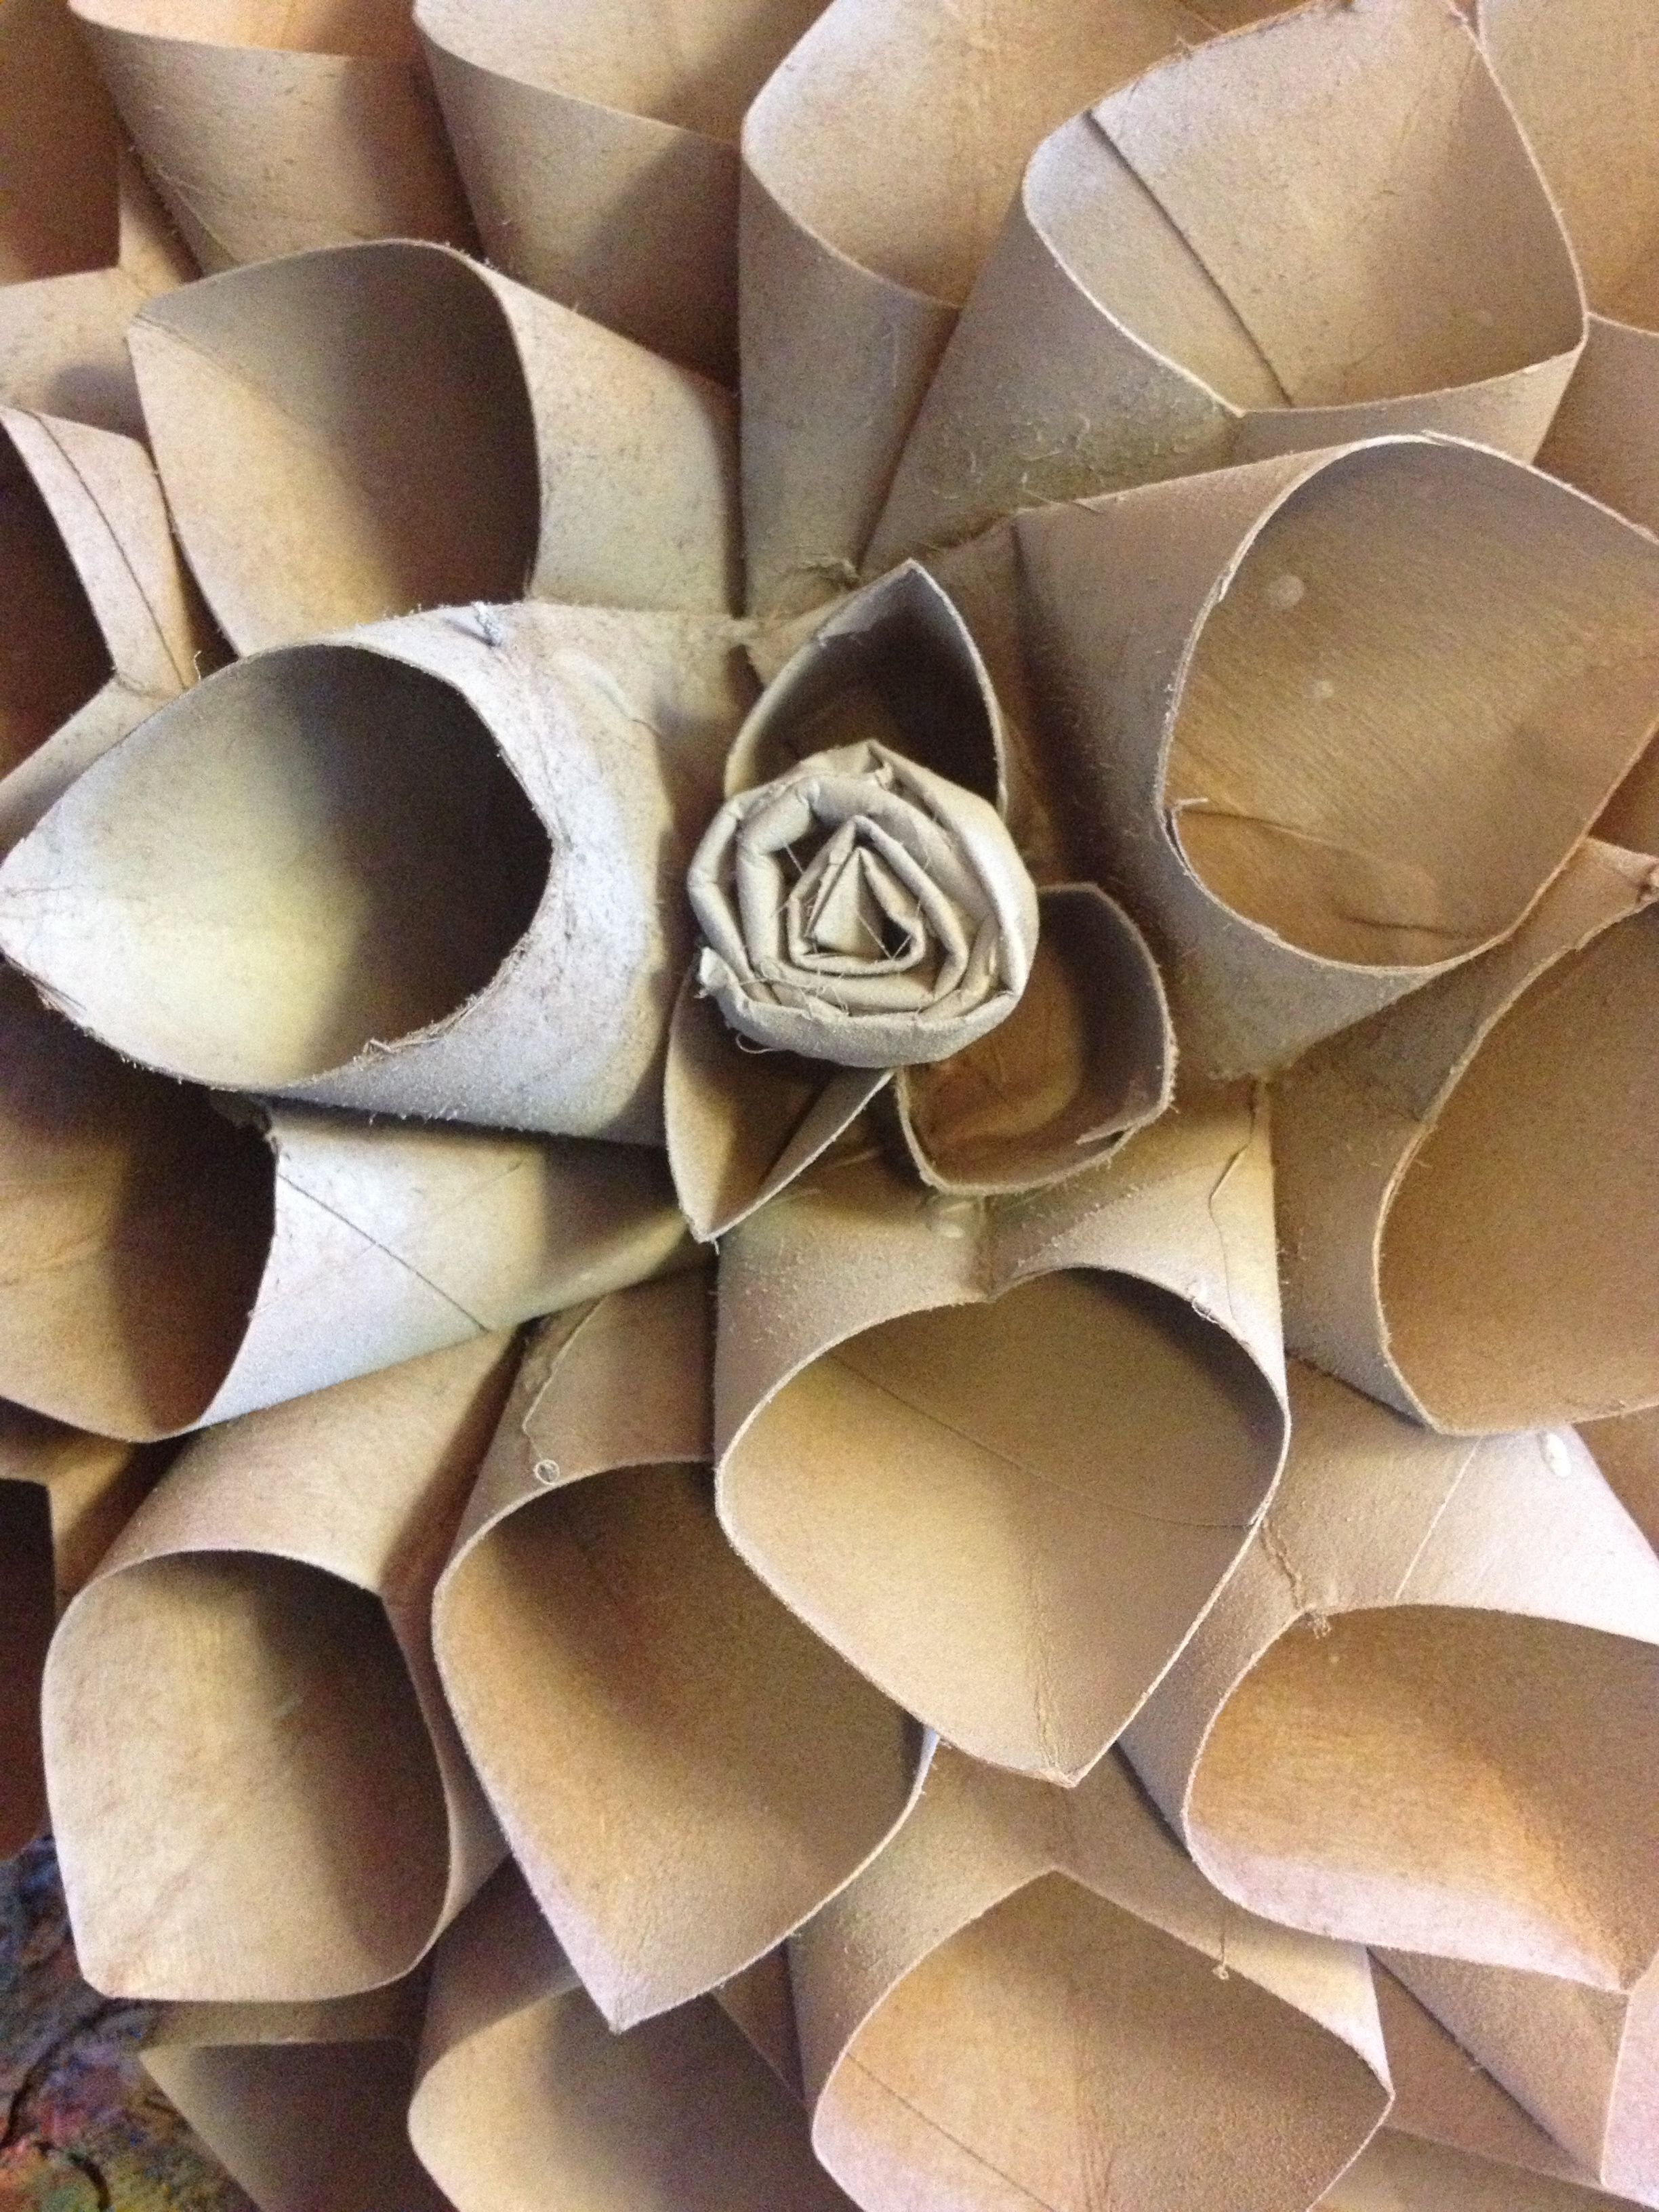 Tp toilet paper rolls to wall art simplecreative me for Toilet paper roll art ideas